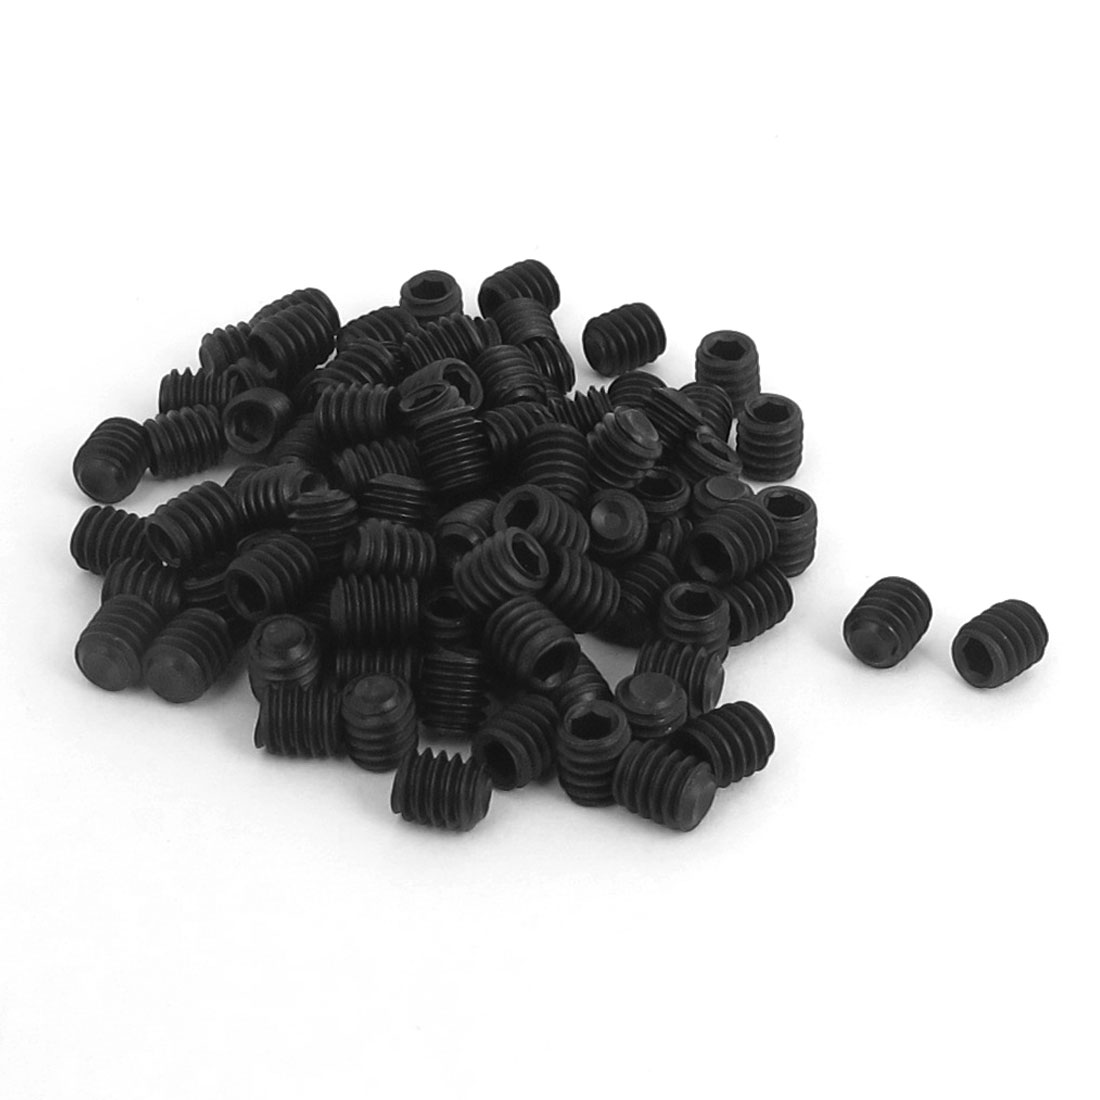 "8#-32x3/16"" 12.9 Alloy Steel Hex Socket Set Cap Point Grub Screws Black 100pcs"